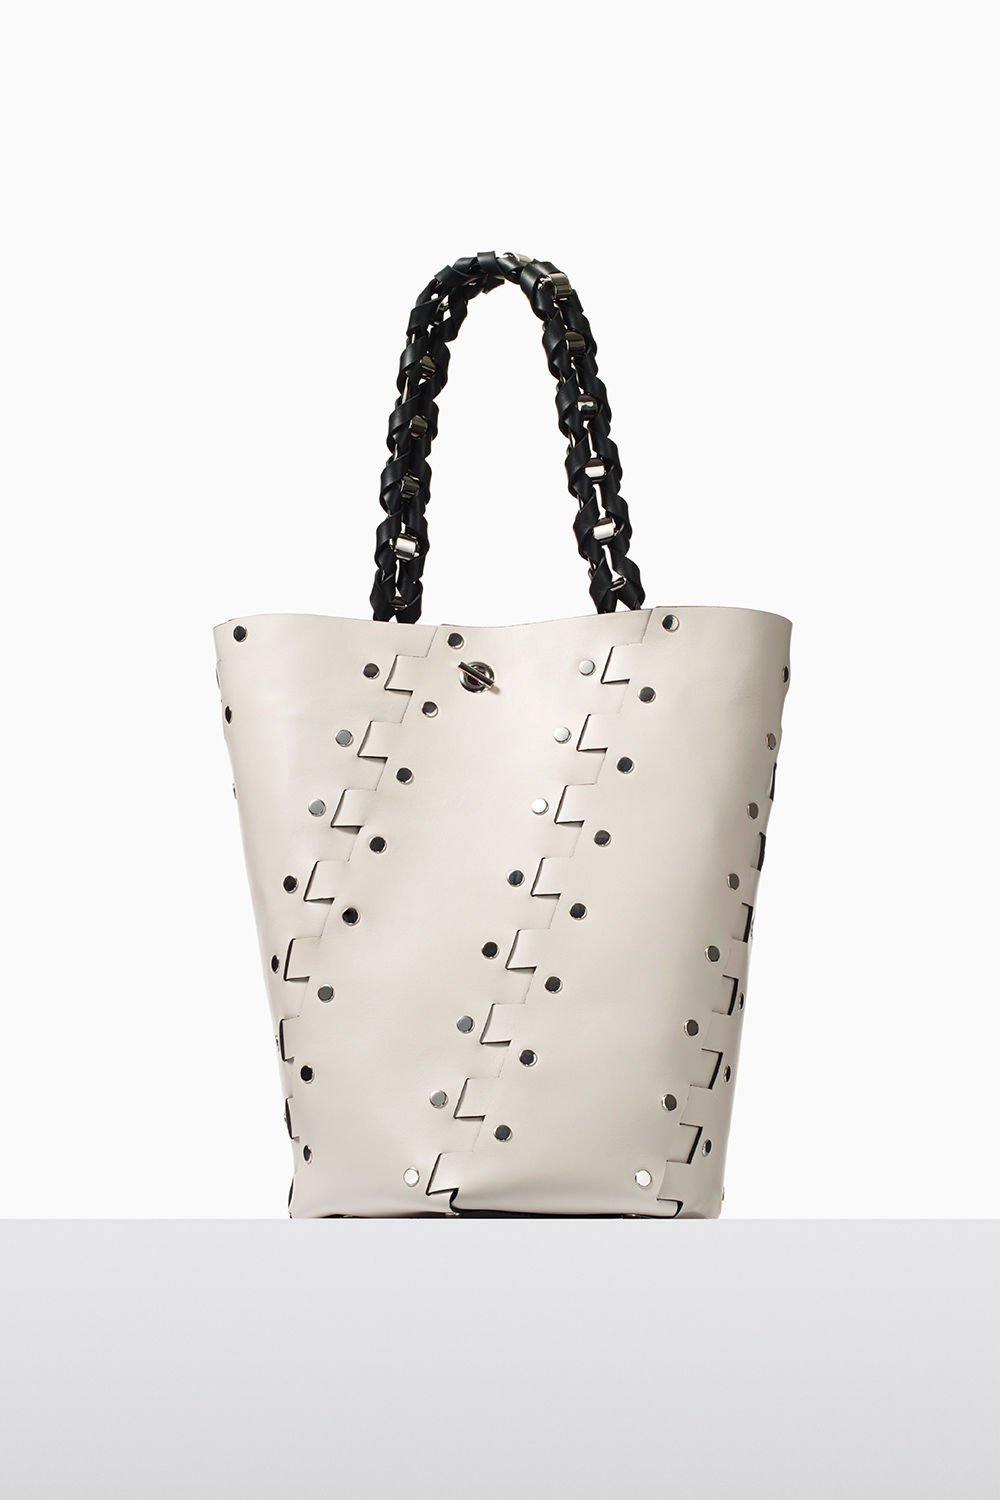 proenza schouler fall 2017 clay studded hinged medium hex bucket bag